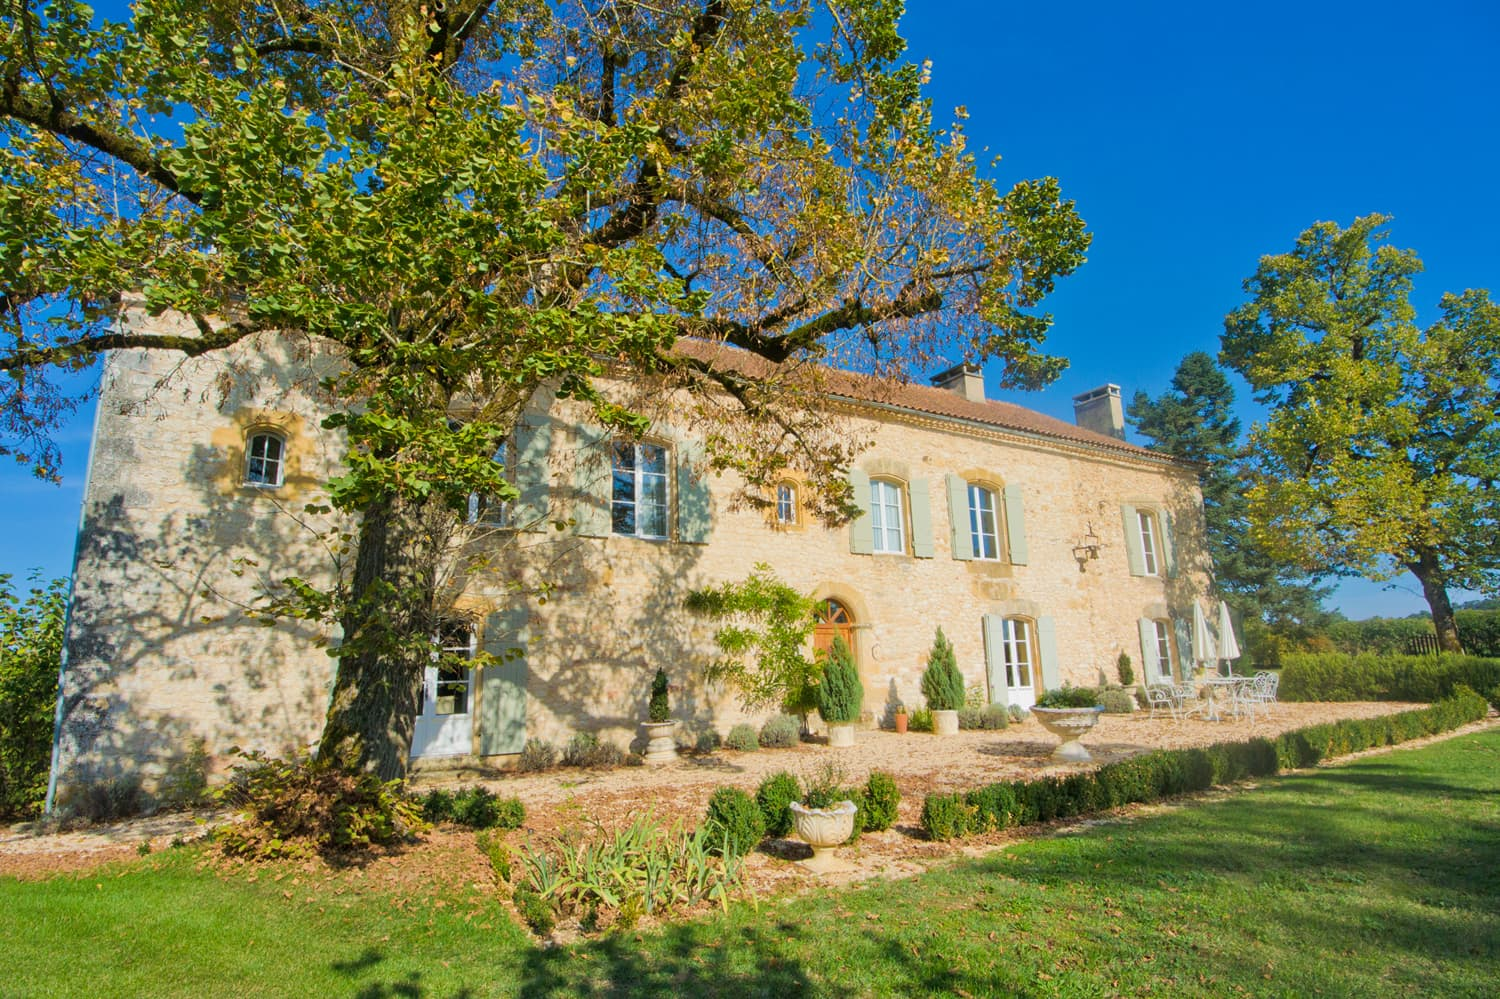 Holiday rental home in Dordogne